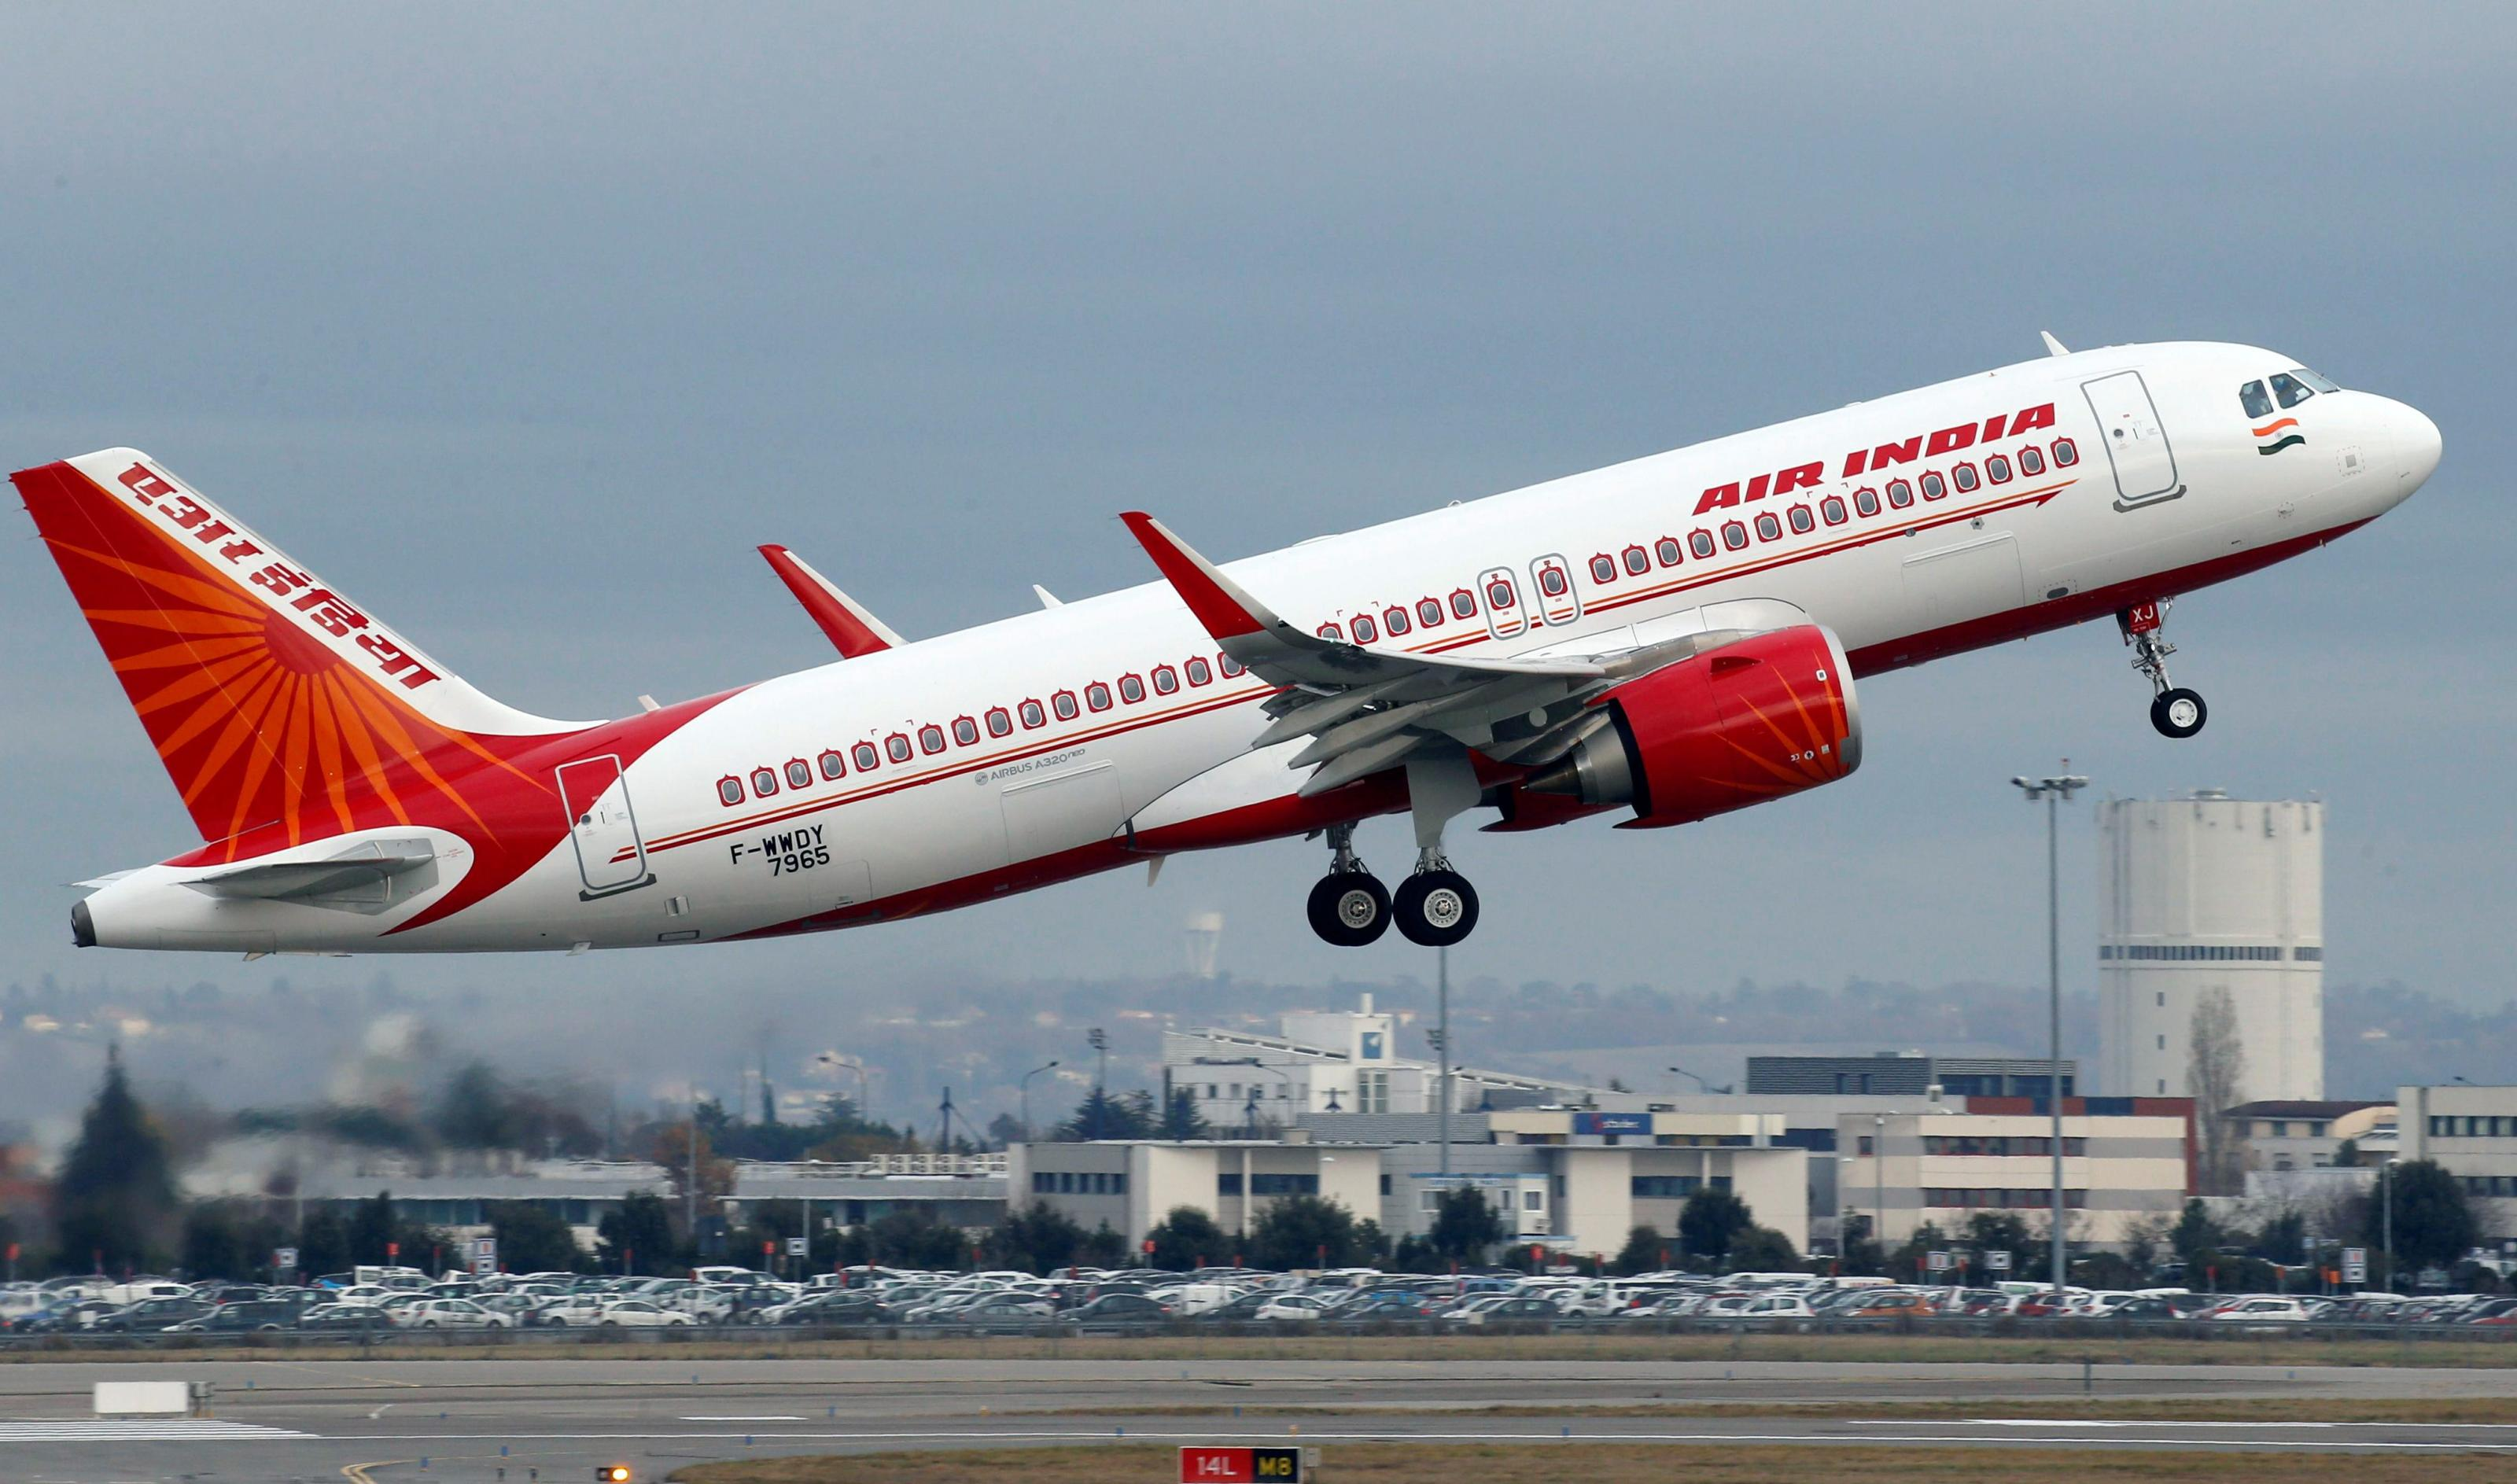 Modi government's Air India divestment may be poorly timed